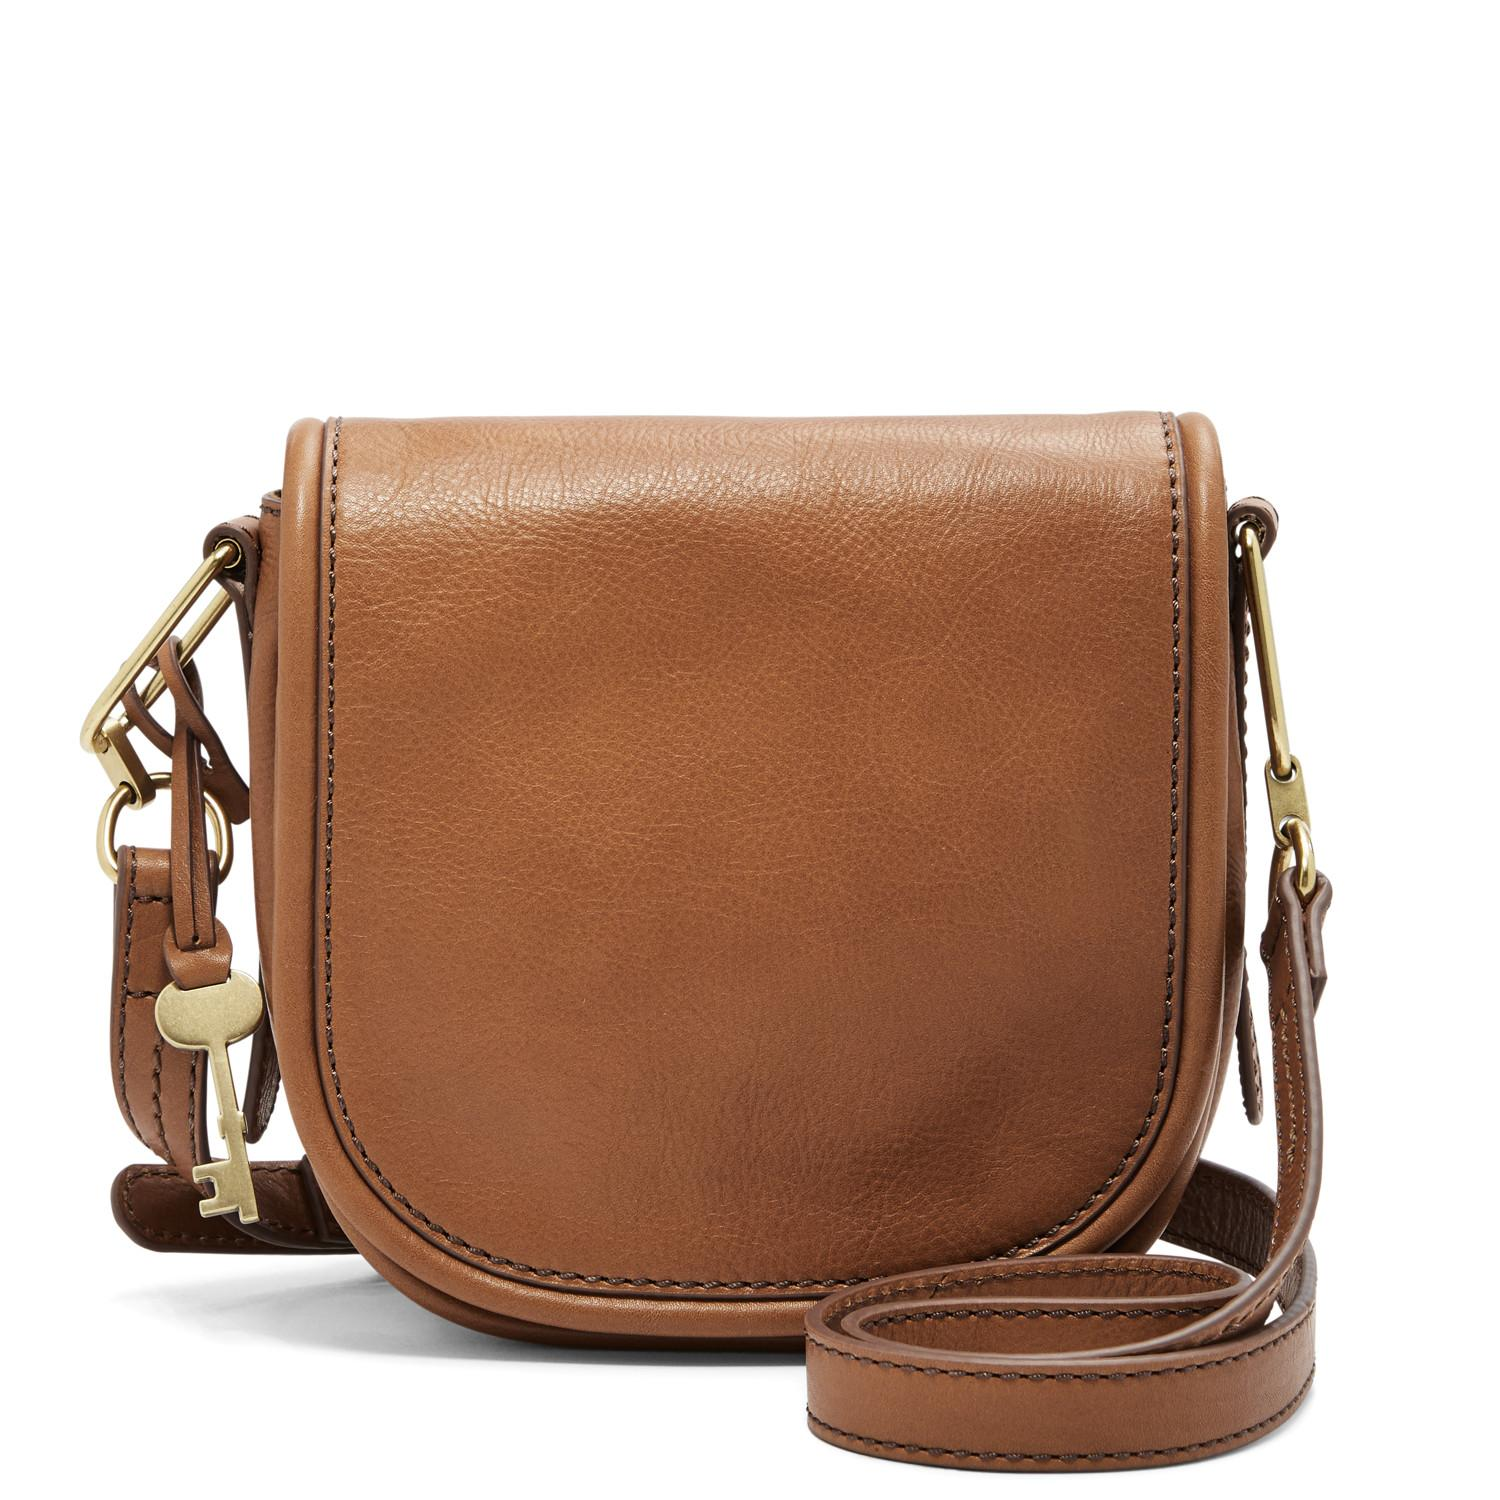 Fossil - Rumi Small - Crossboddy Brown Leather - Tas Wanita - ZB7274-216 - SL